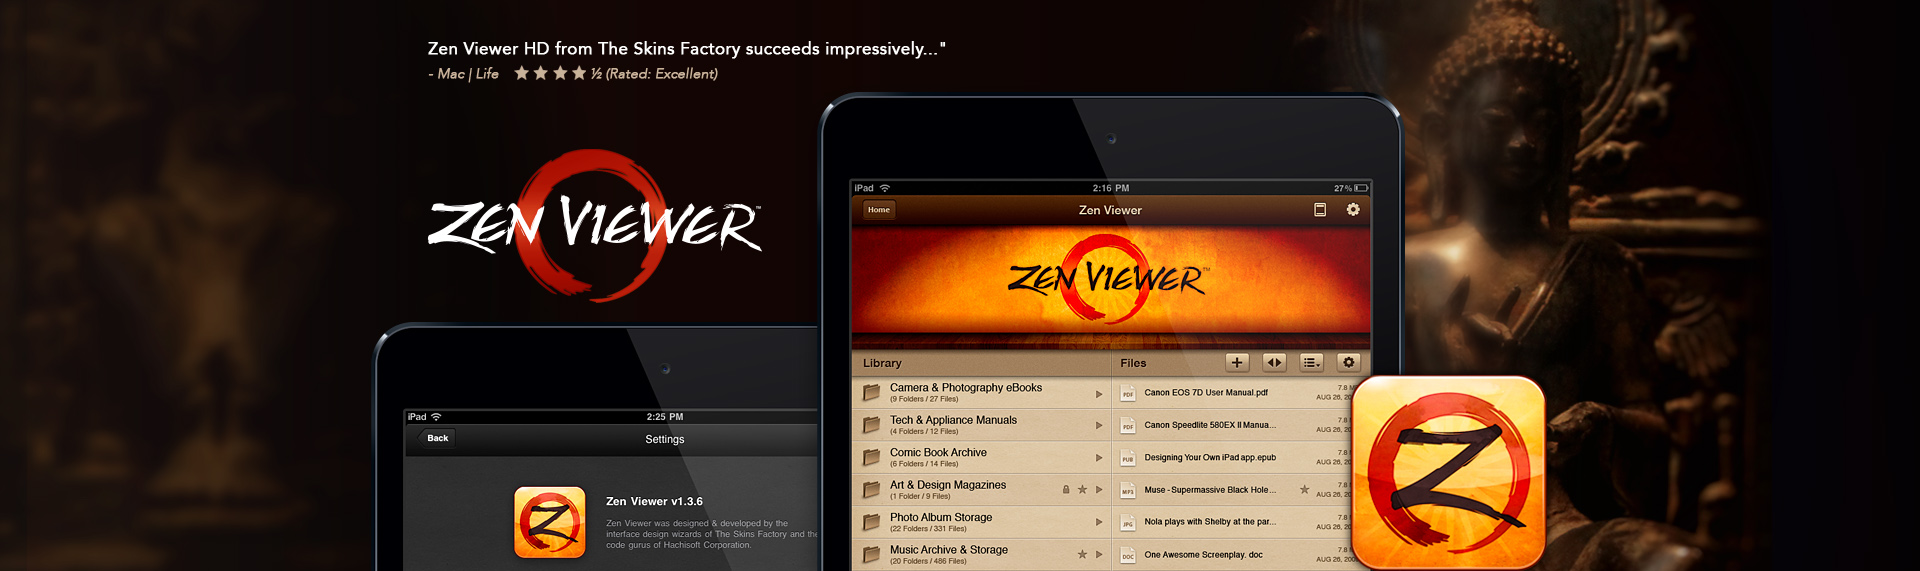 ZenViewer for iPad  iPad Application UX & UI Design, Brand Identity Design, Product Name Creation  The critically acclaimed file viewer, reader, manager & audio recorder. Zen Viewer was designed by The Skins Factory with a singular purpose in mind... to design the most stylized & intuitive iOS file viewer & reader in the world. Unfortunately The Skins Factory did not own the code, so once our coding partner pulled out of the project, we honored our obligation to pull Zen Viewer from the App Store, but not before garnering outstanding reviews and critical acclaim.